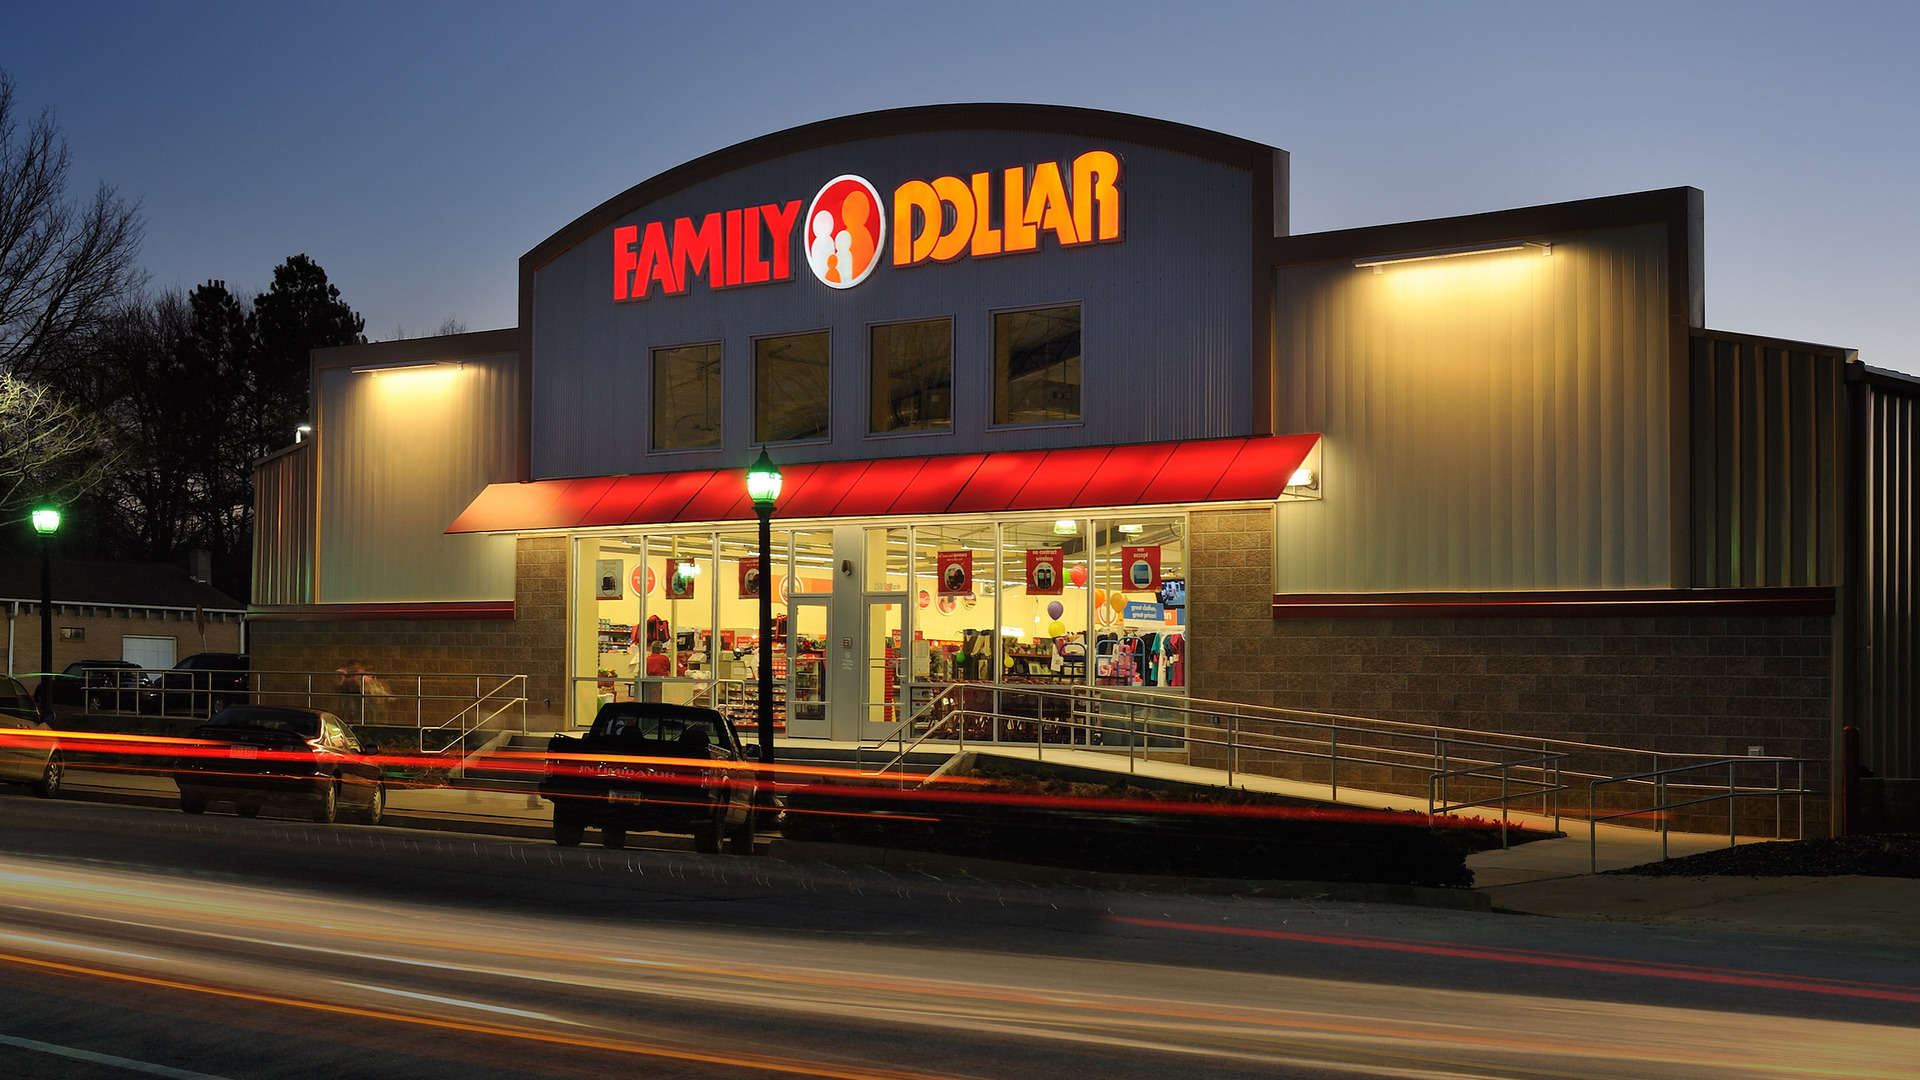 Commercial interior architectural design photographers for Interior by designs family dollar